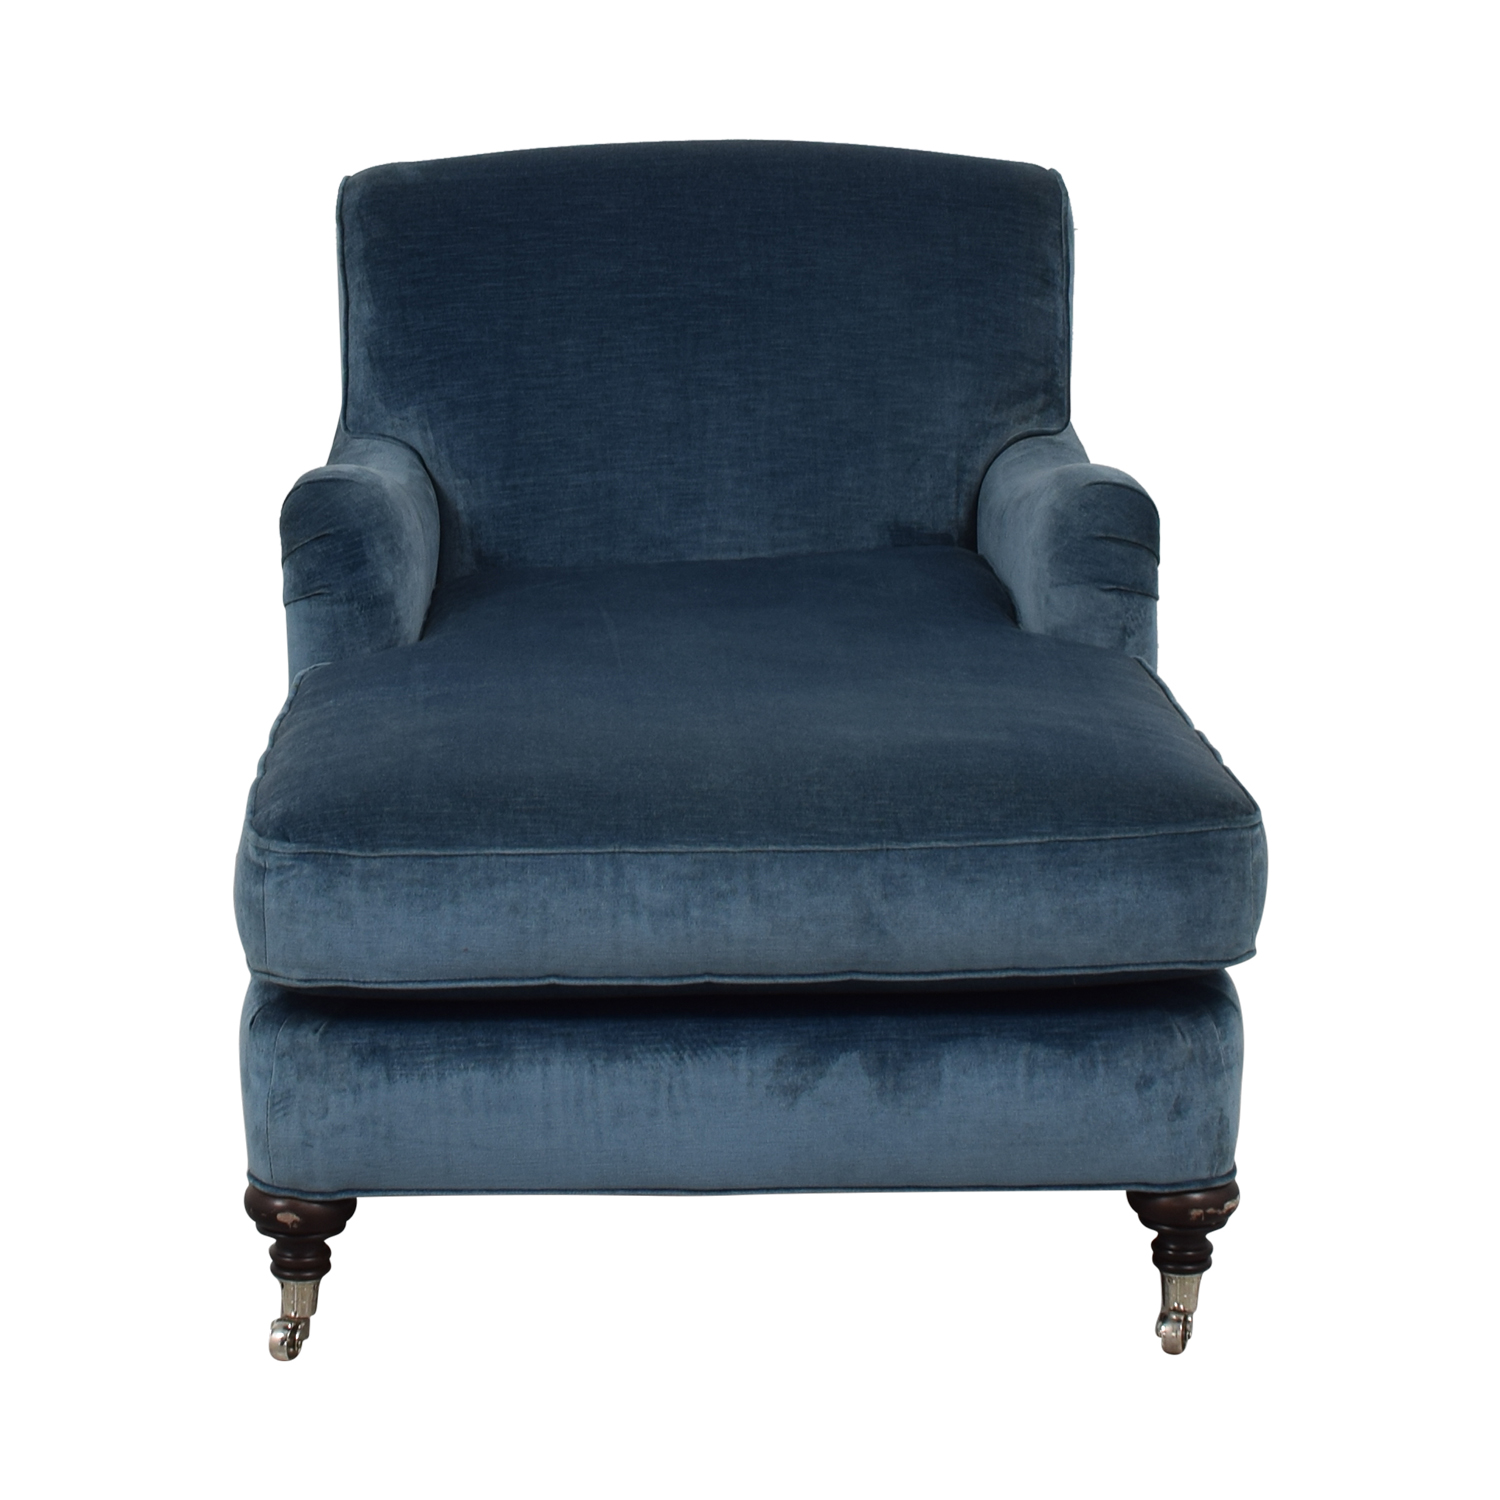 Mitchell Gold + Bob Williams Mitchell Gold + Bob Williams Blue Velvet Chaise Lounge on Castors price